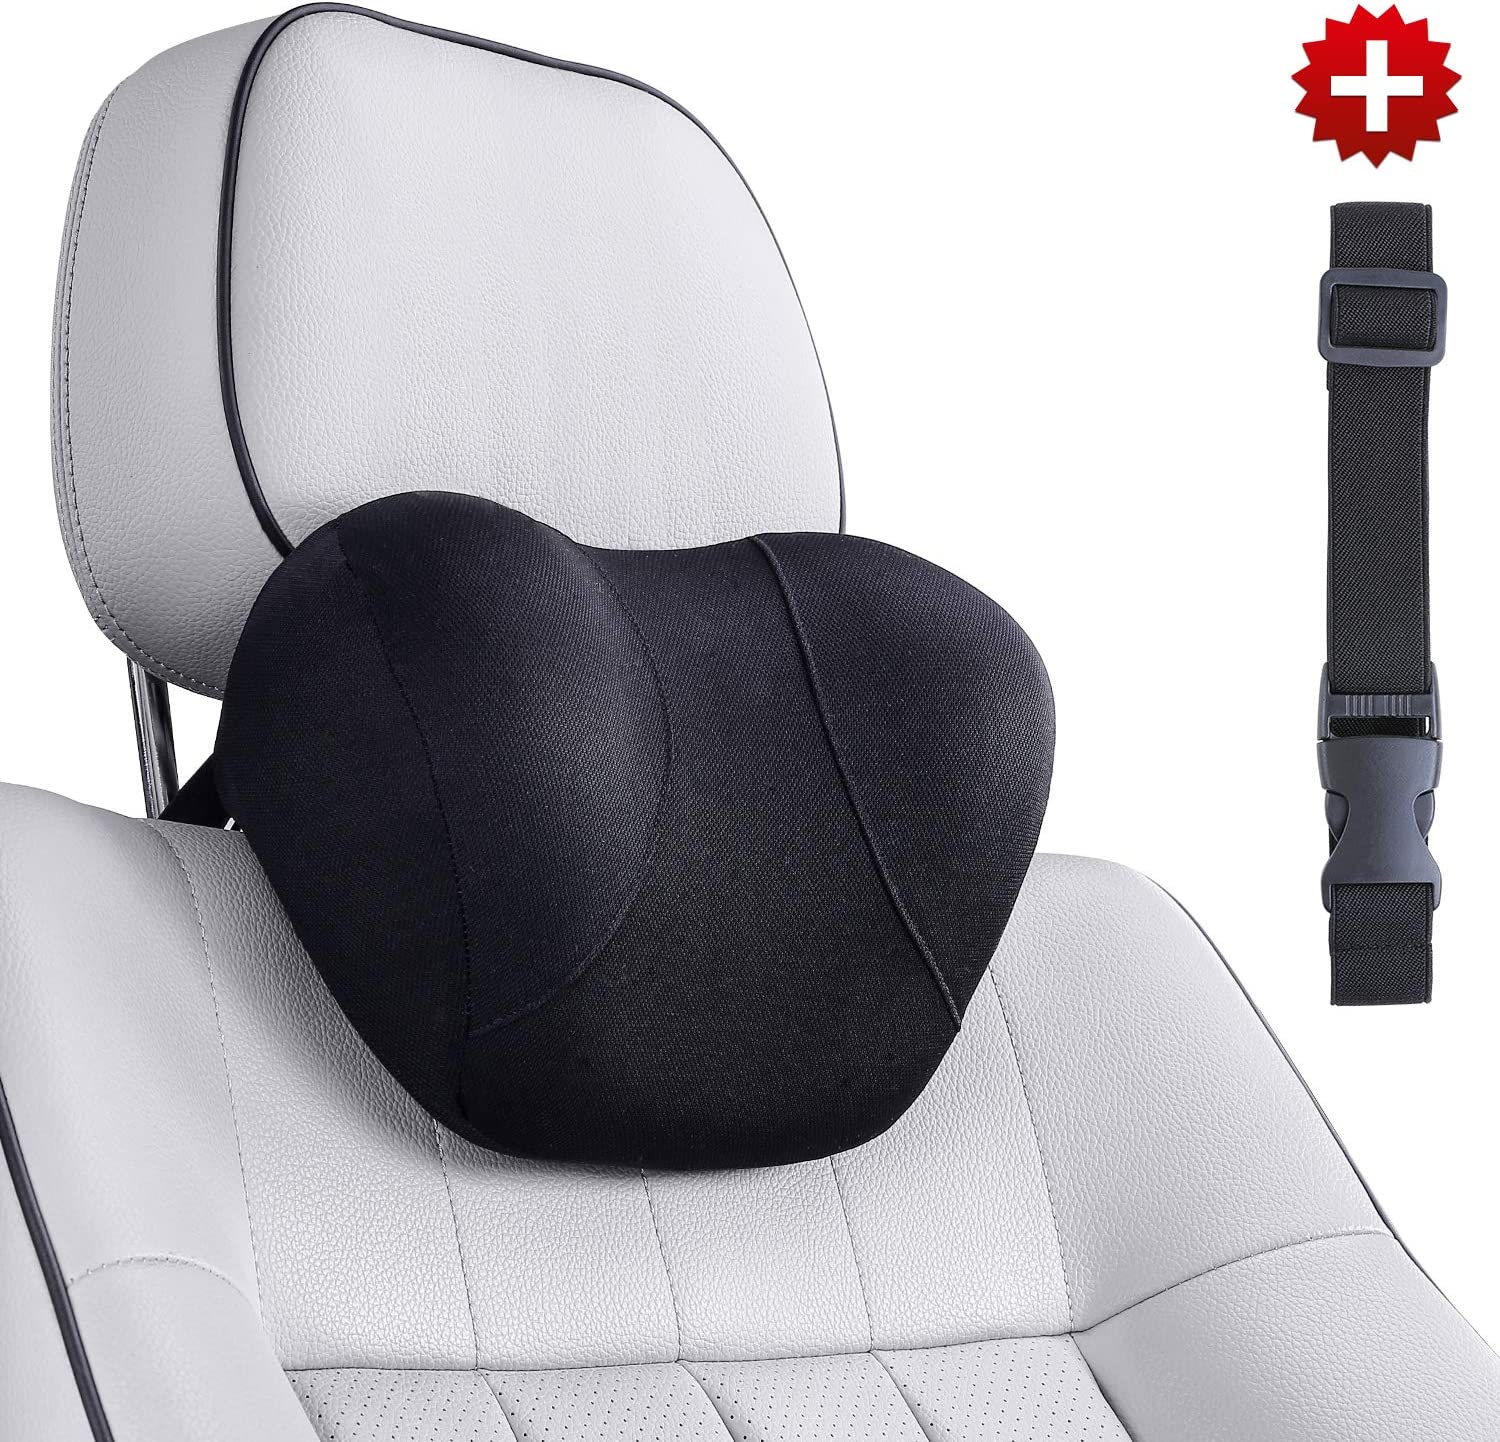 Conthou Car Neck Pillow Memory Foam for Cervical Pain Relief, Ergonomic Neck Support with Extender Strap for Car Seat, Office Chair, Recliner and Gaming Chair